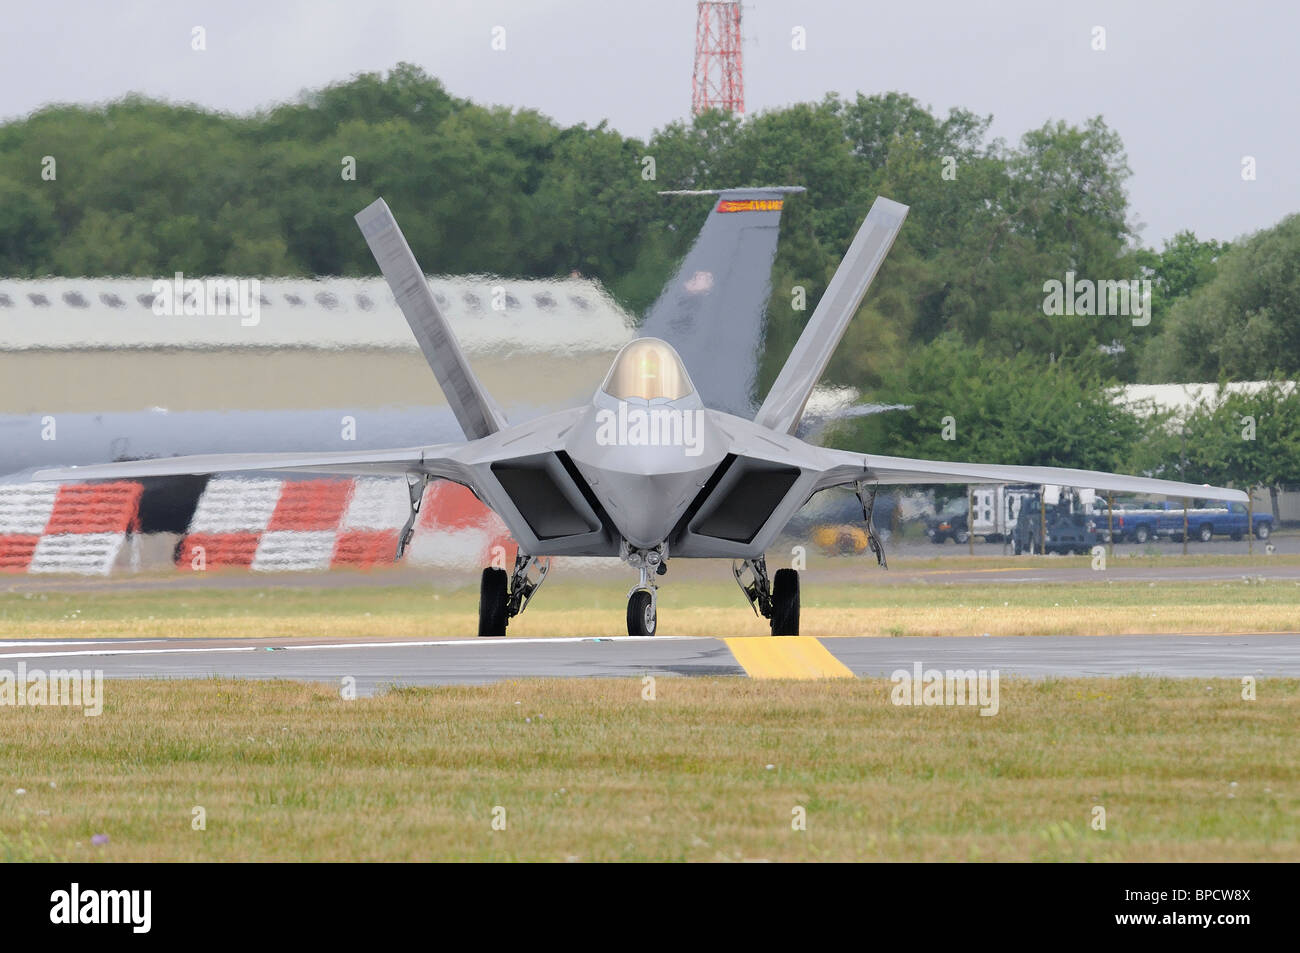 A head on view of the Lockheed Martin F-22 Raptor as it taxis out to take off at the 2010 RIAT Royal International - Stock Image